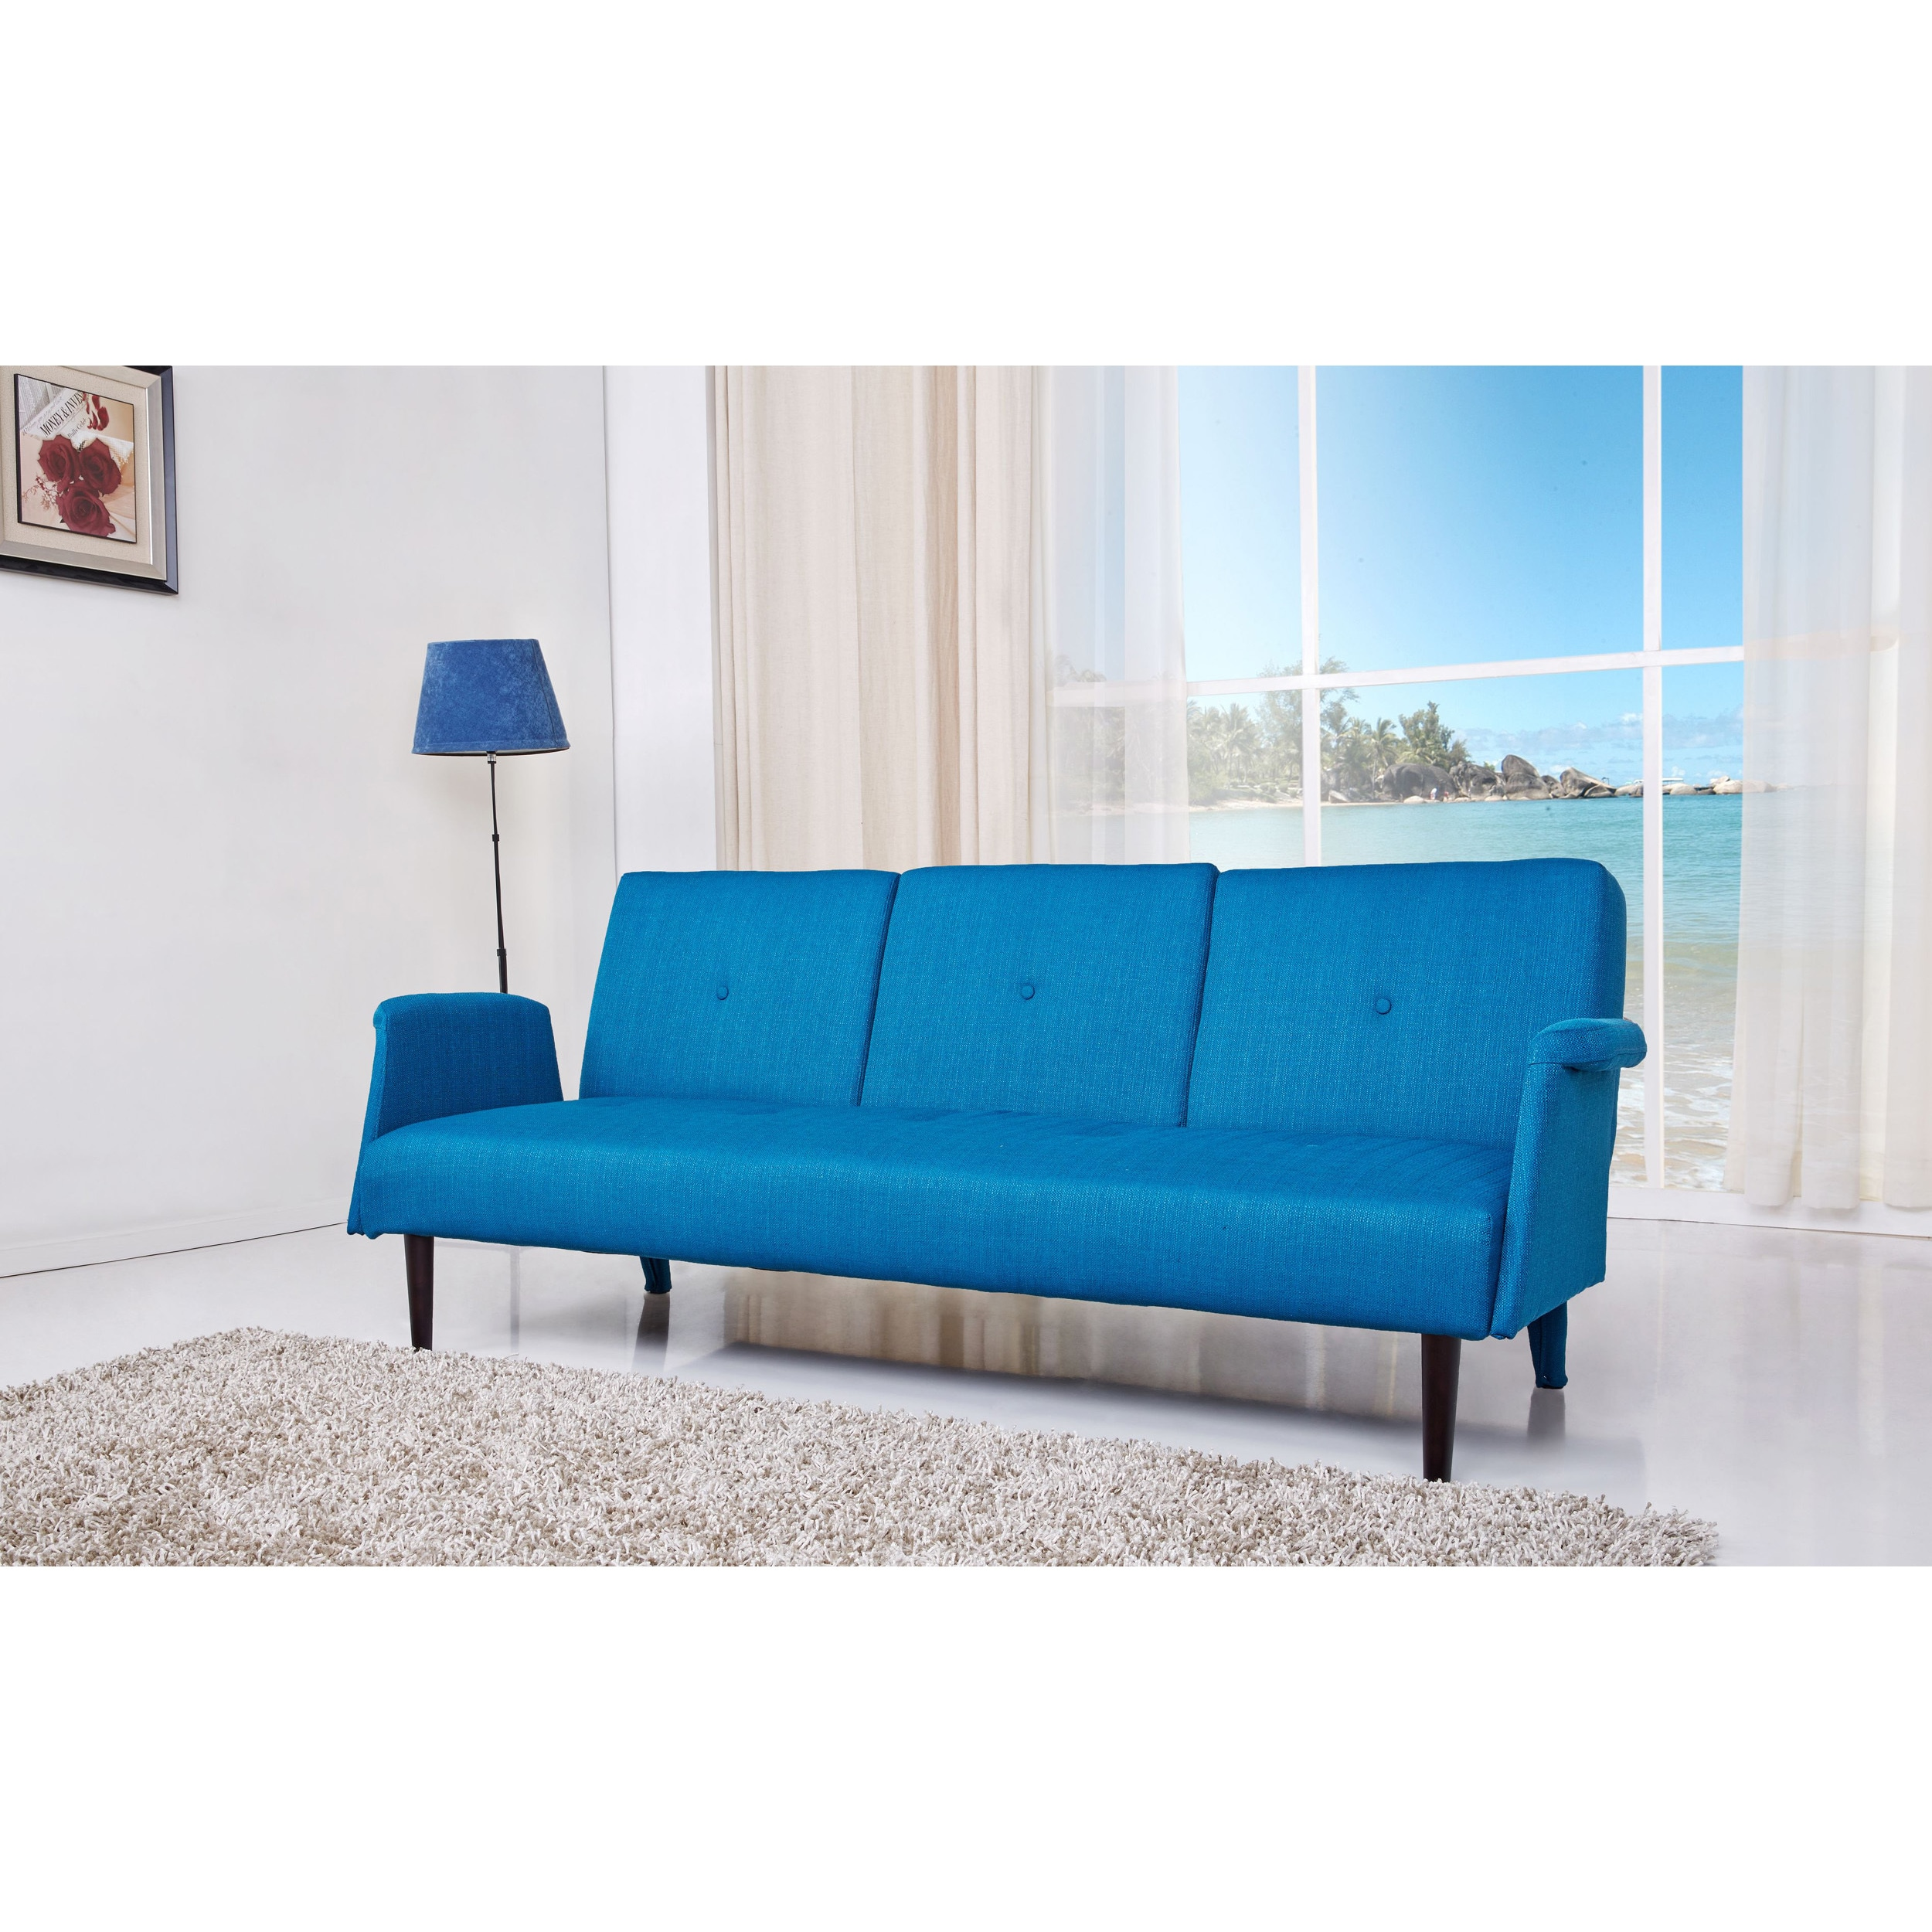 Convertible Sofa Bed Modern Convertible Sofa With Pullout